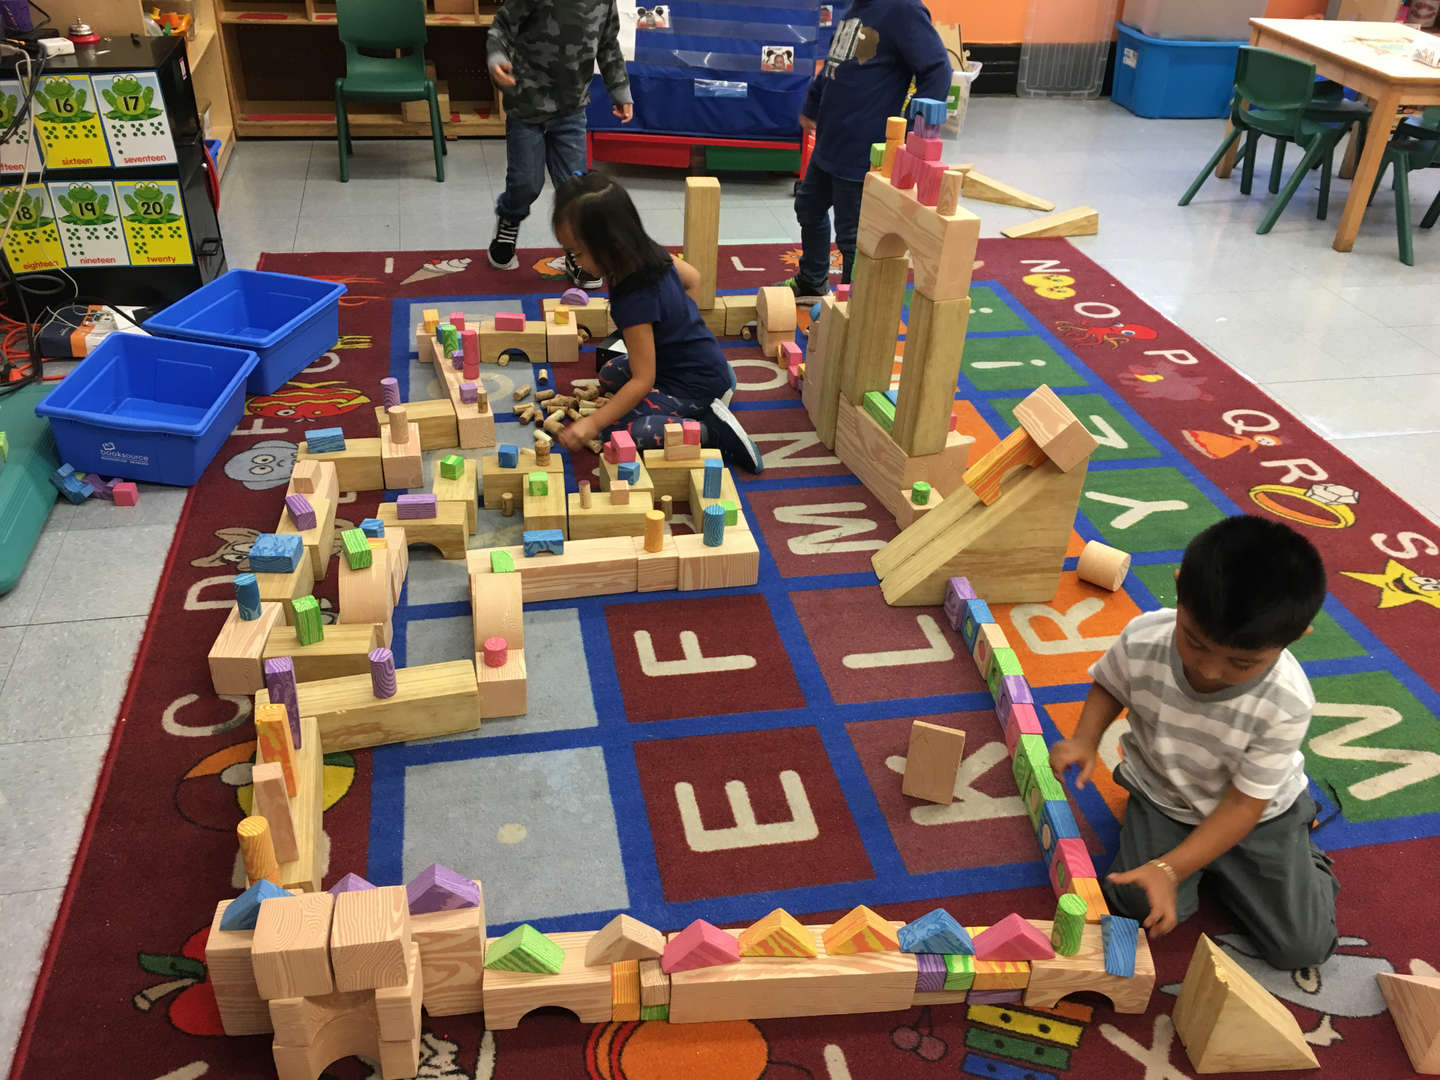 Students play with building blocks